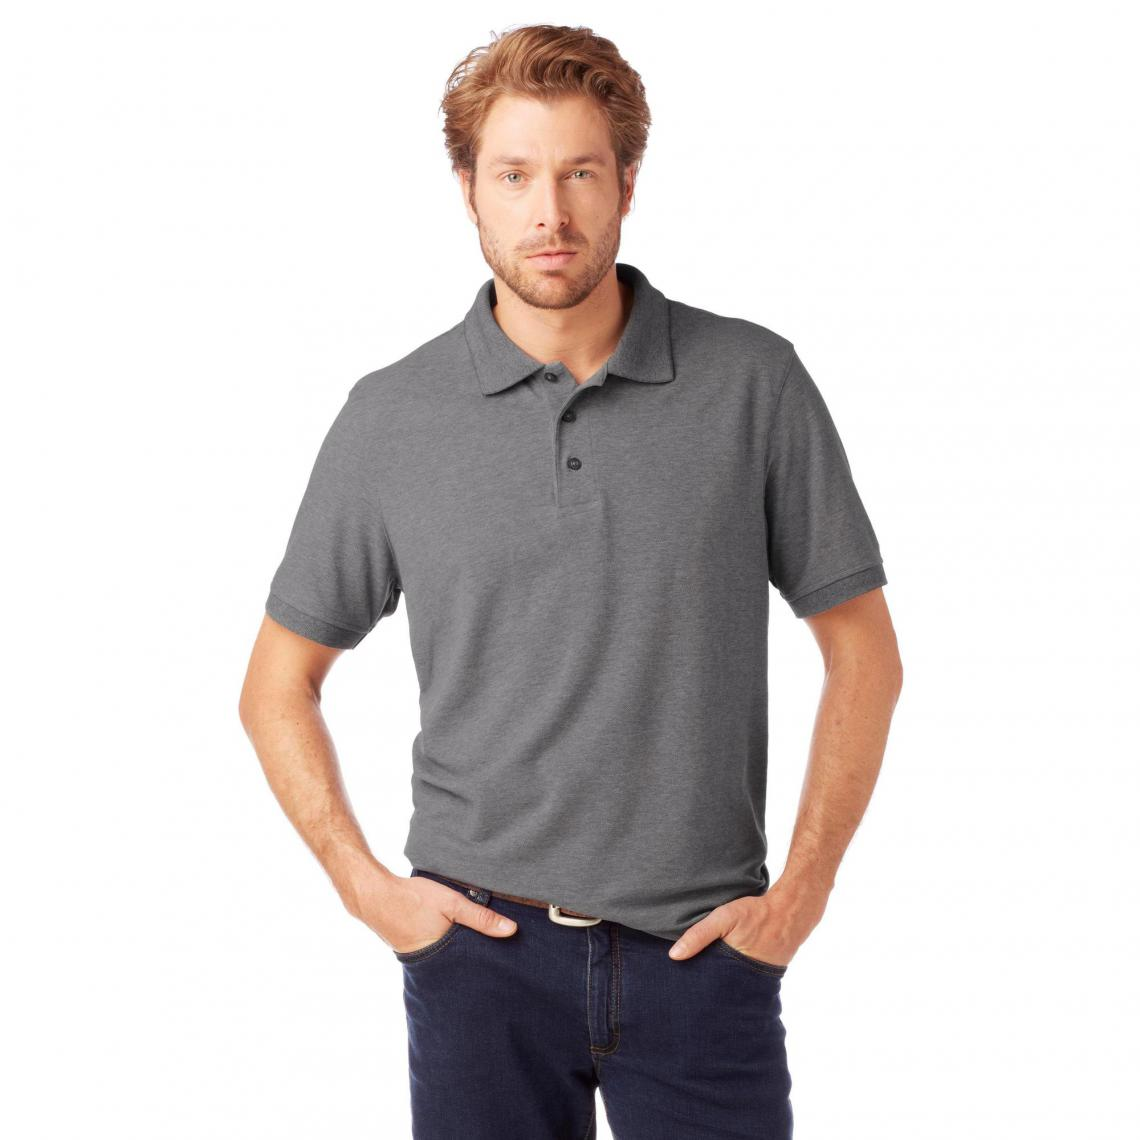 Manches Homme Gris3 Grey Maille Polo Piquée Connection Courtes rBWCdxoe